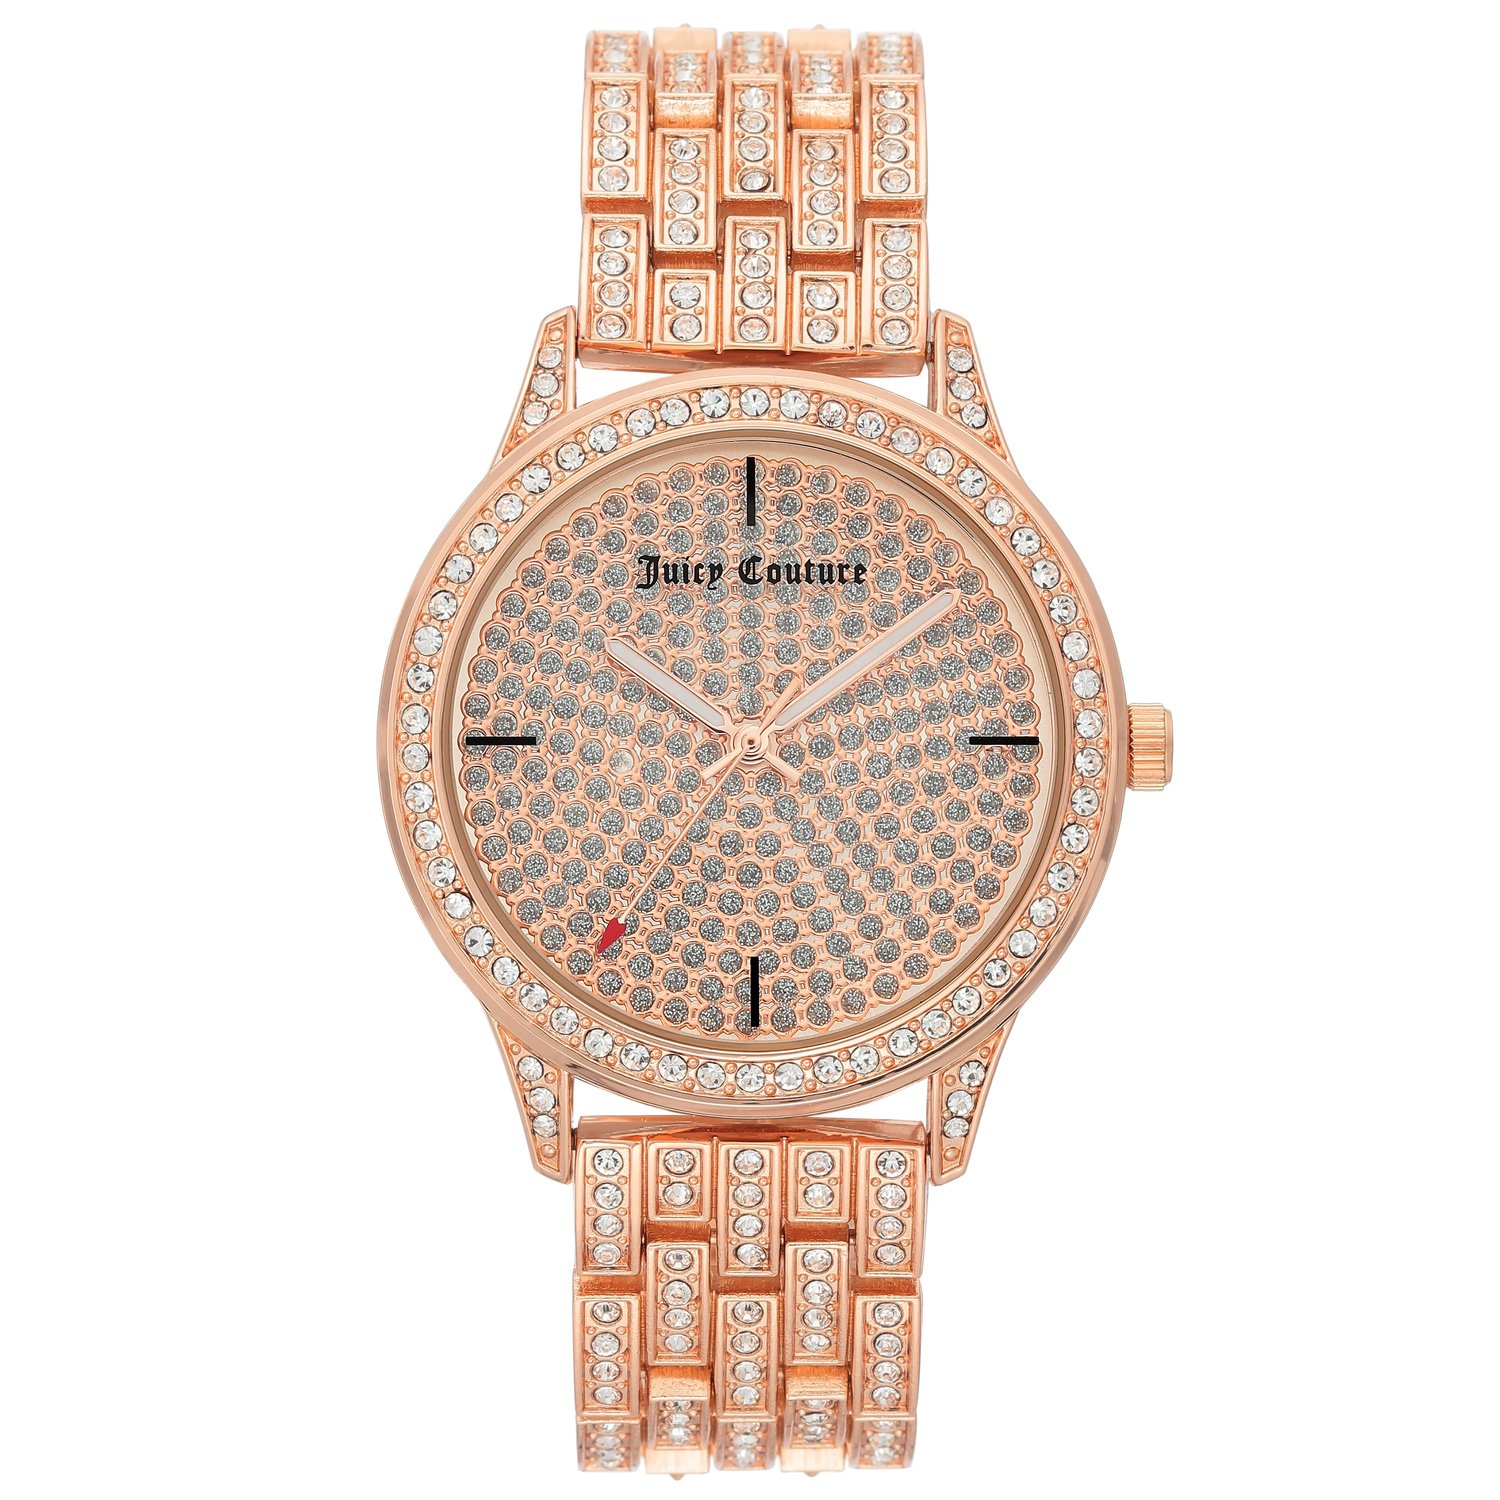 Juicy Couture Women's Watch Rose Gold JC/1138PVRG